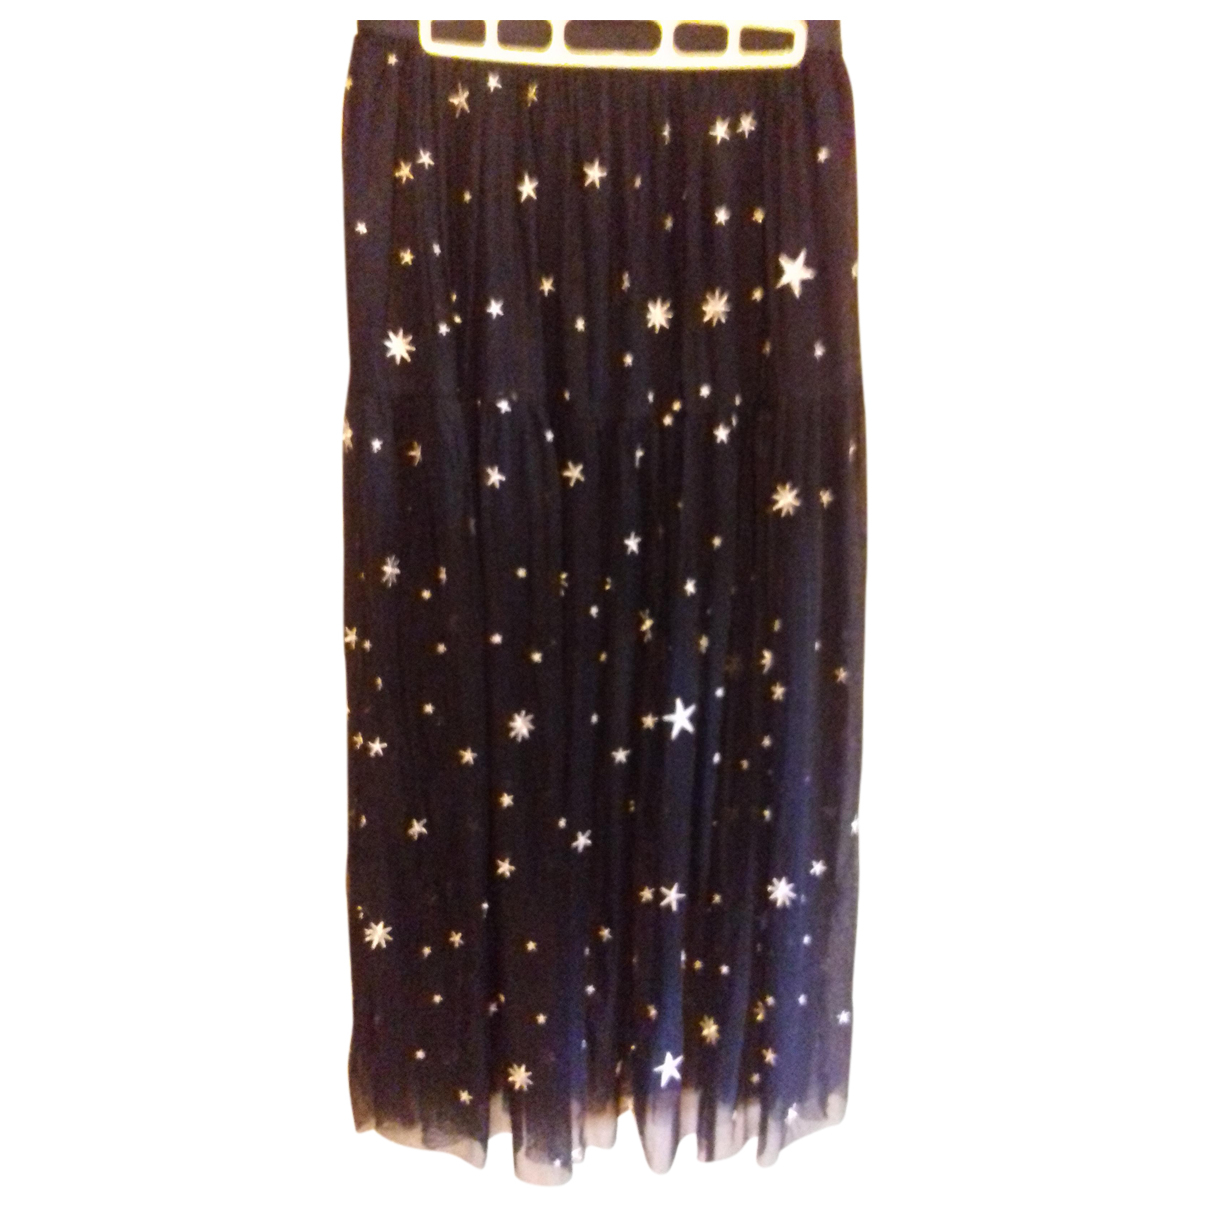 Maje Fall Winter 2019 Black skirt for Women 3 0-5